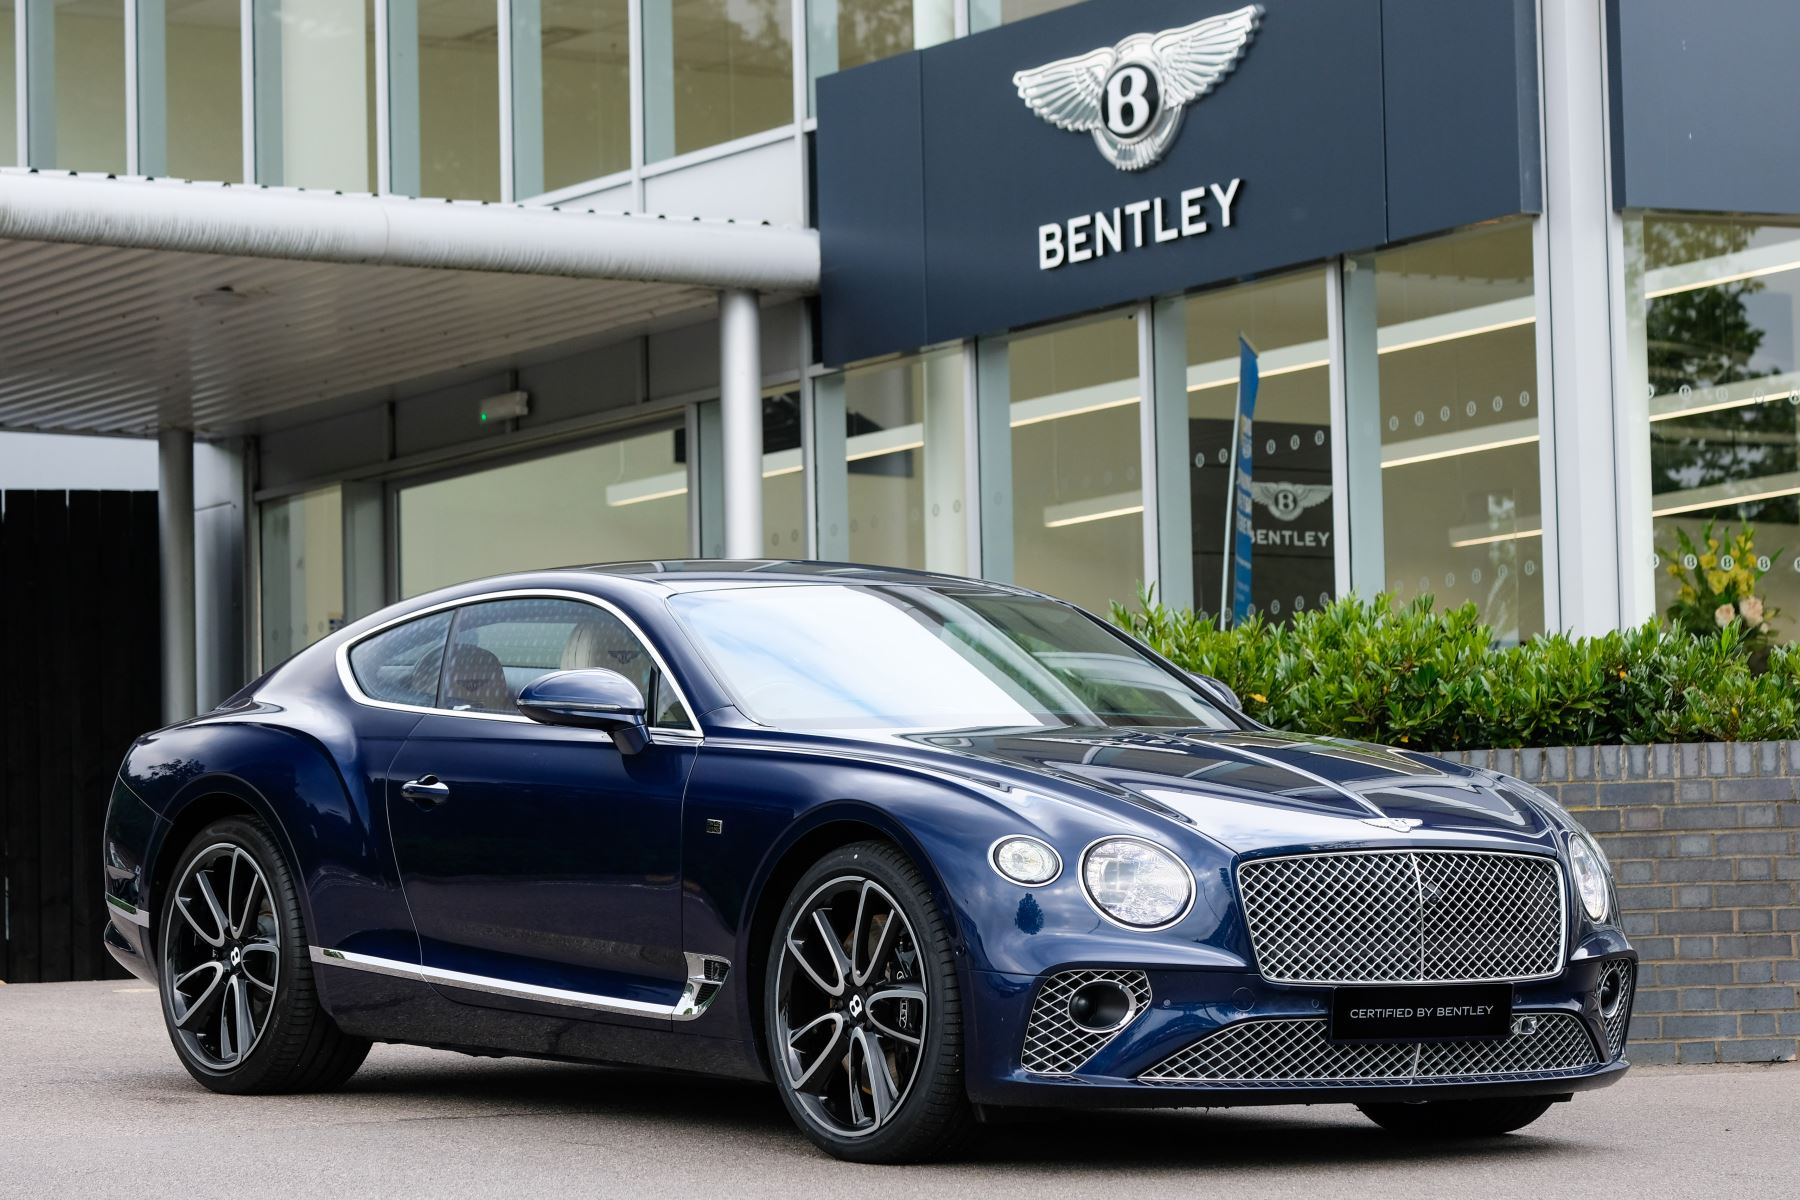 Bentley Continental GT First Edition 6.0 W12 Automatic 2 door Coupe